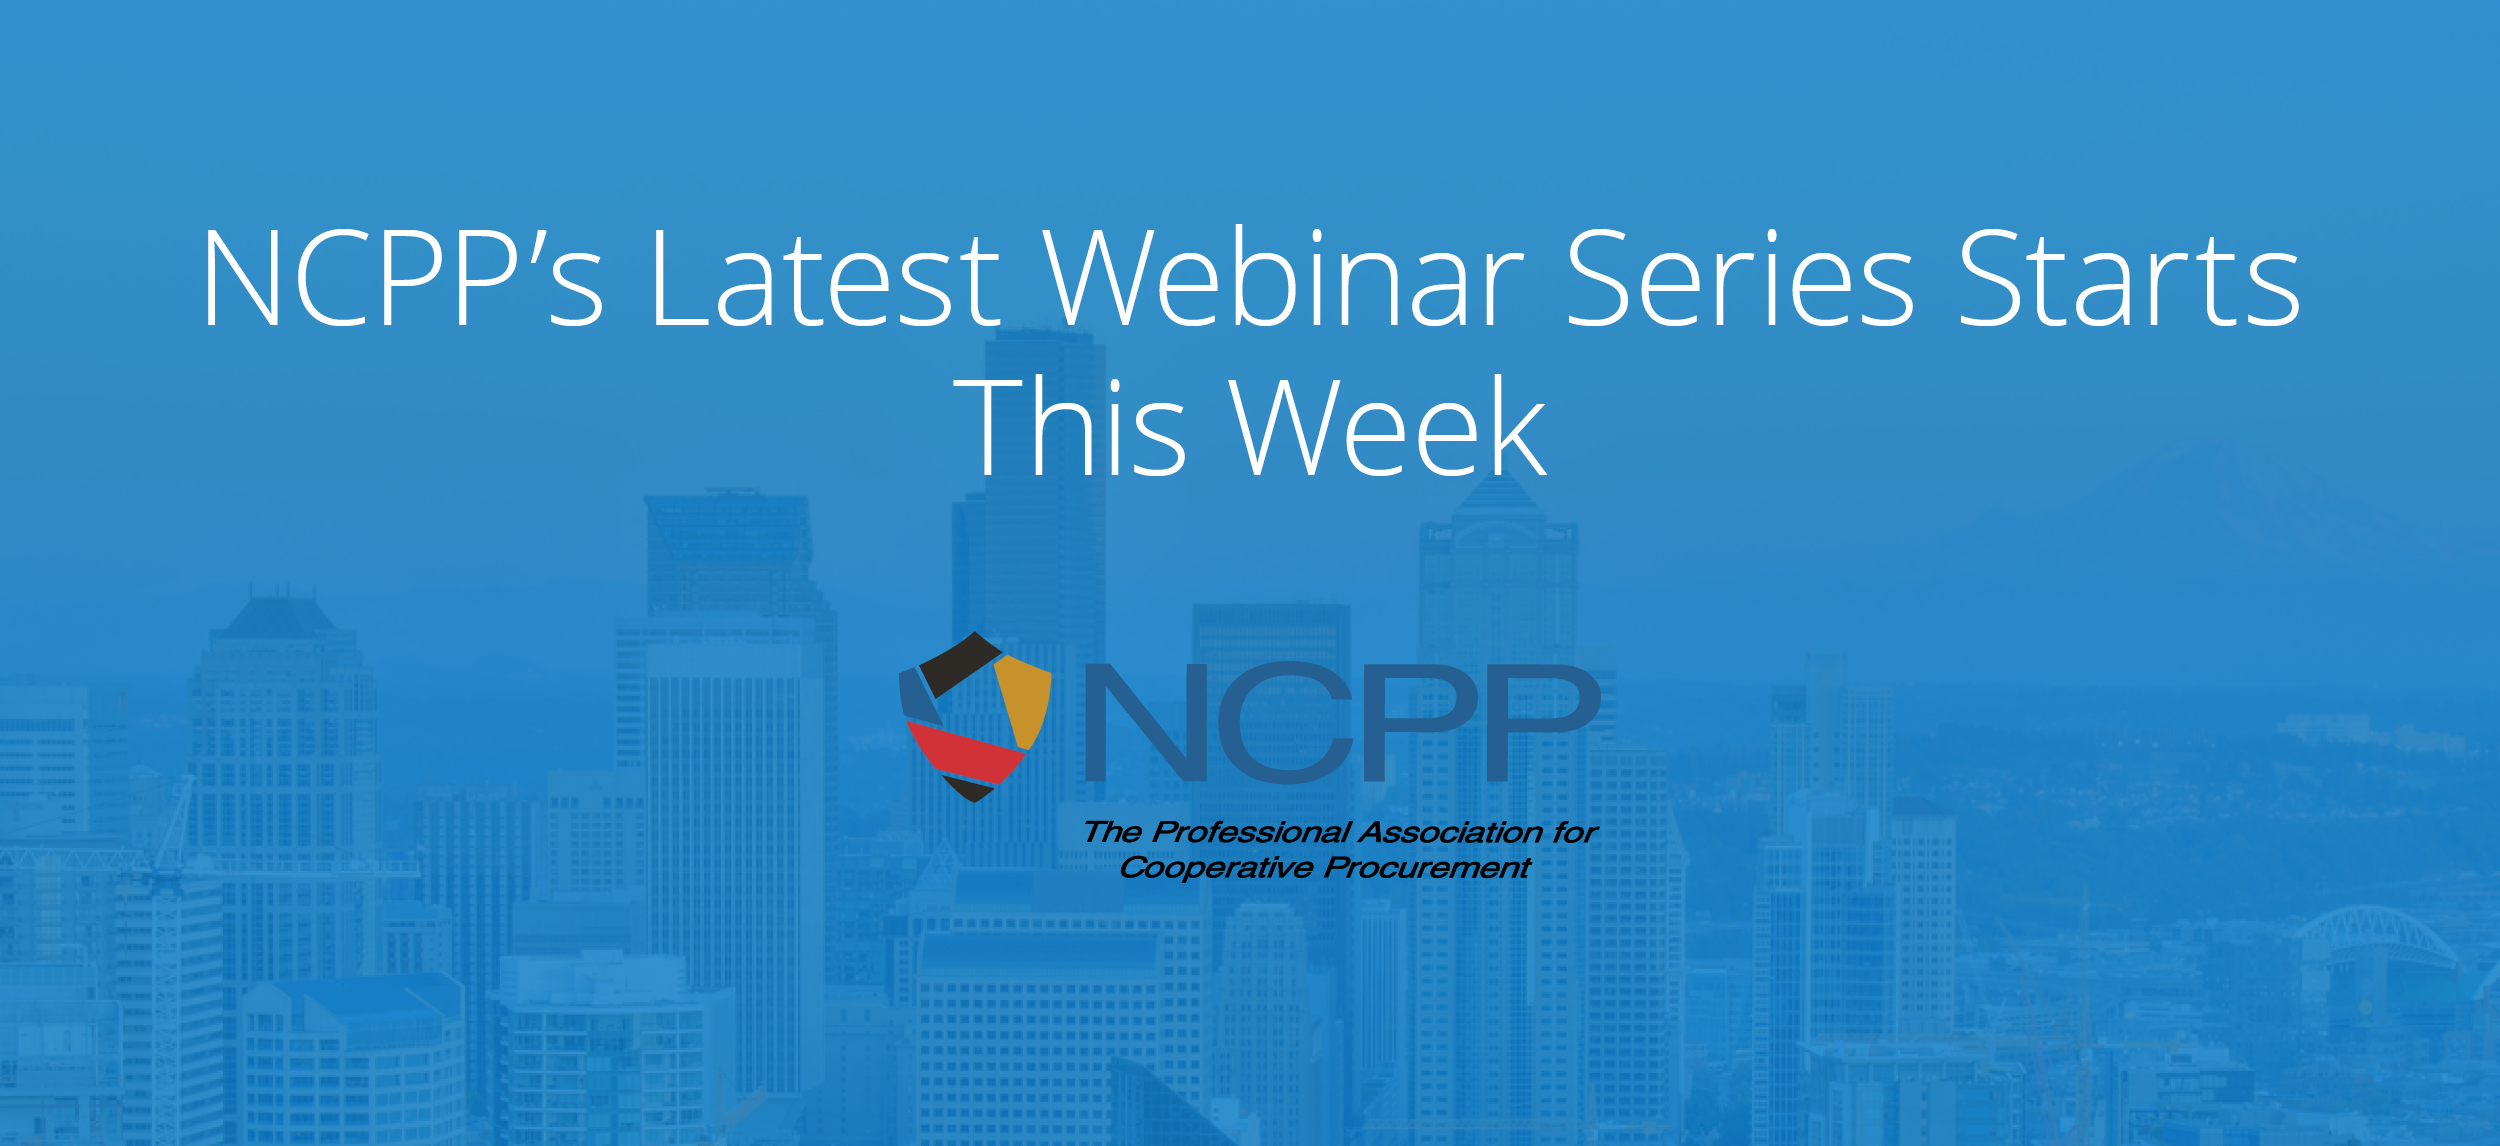 Register for NCPP's Free Emergency Preparedness Webinar Series